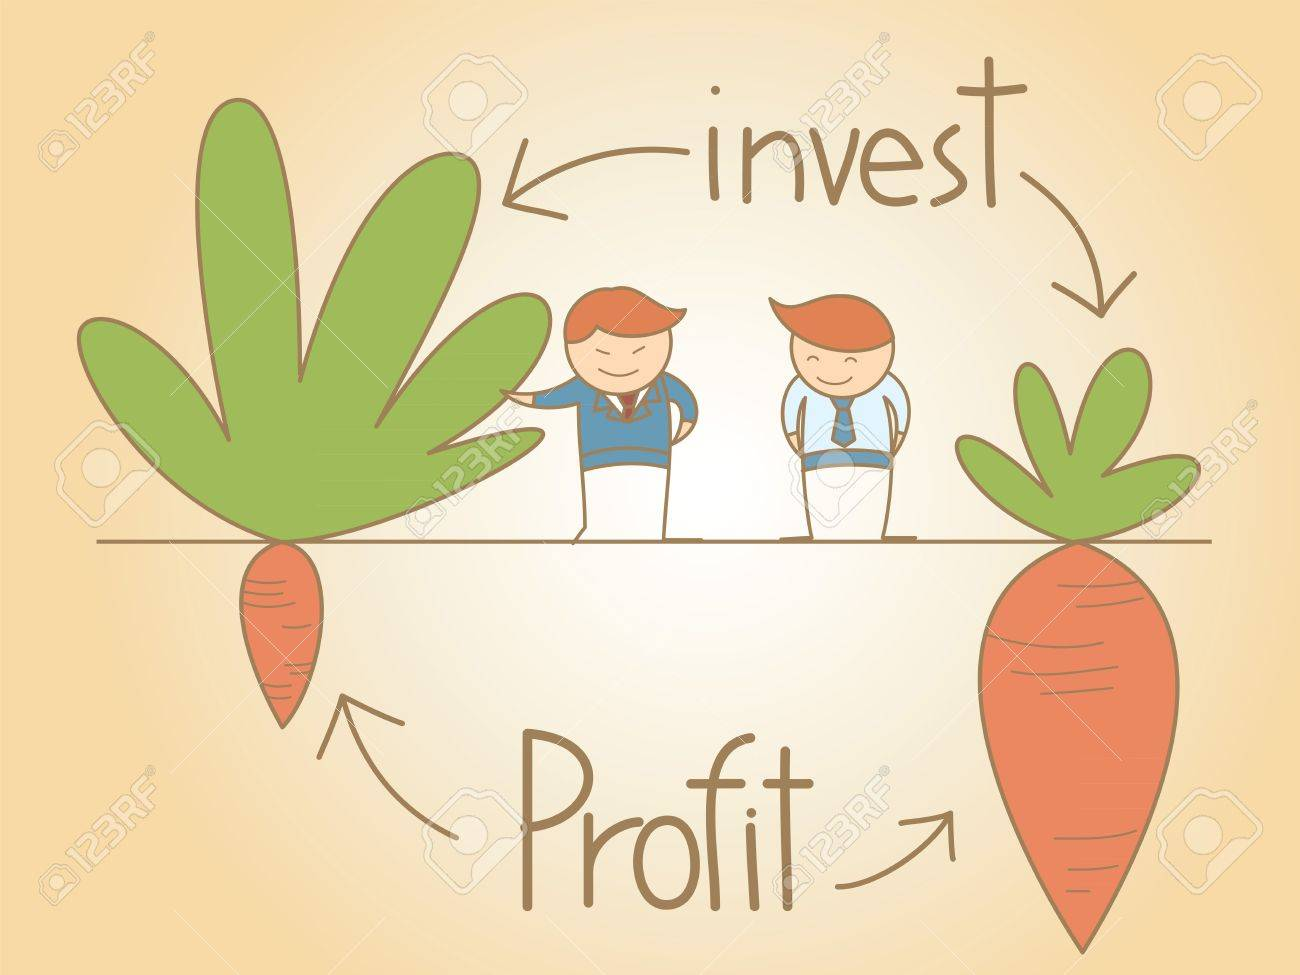 business man talk invest and profit cartoon character concept - 18389346